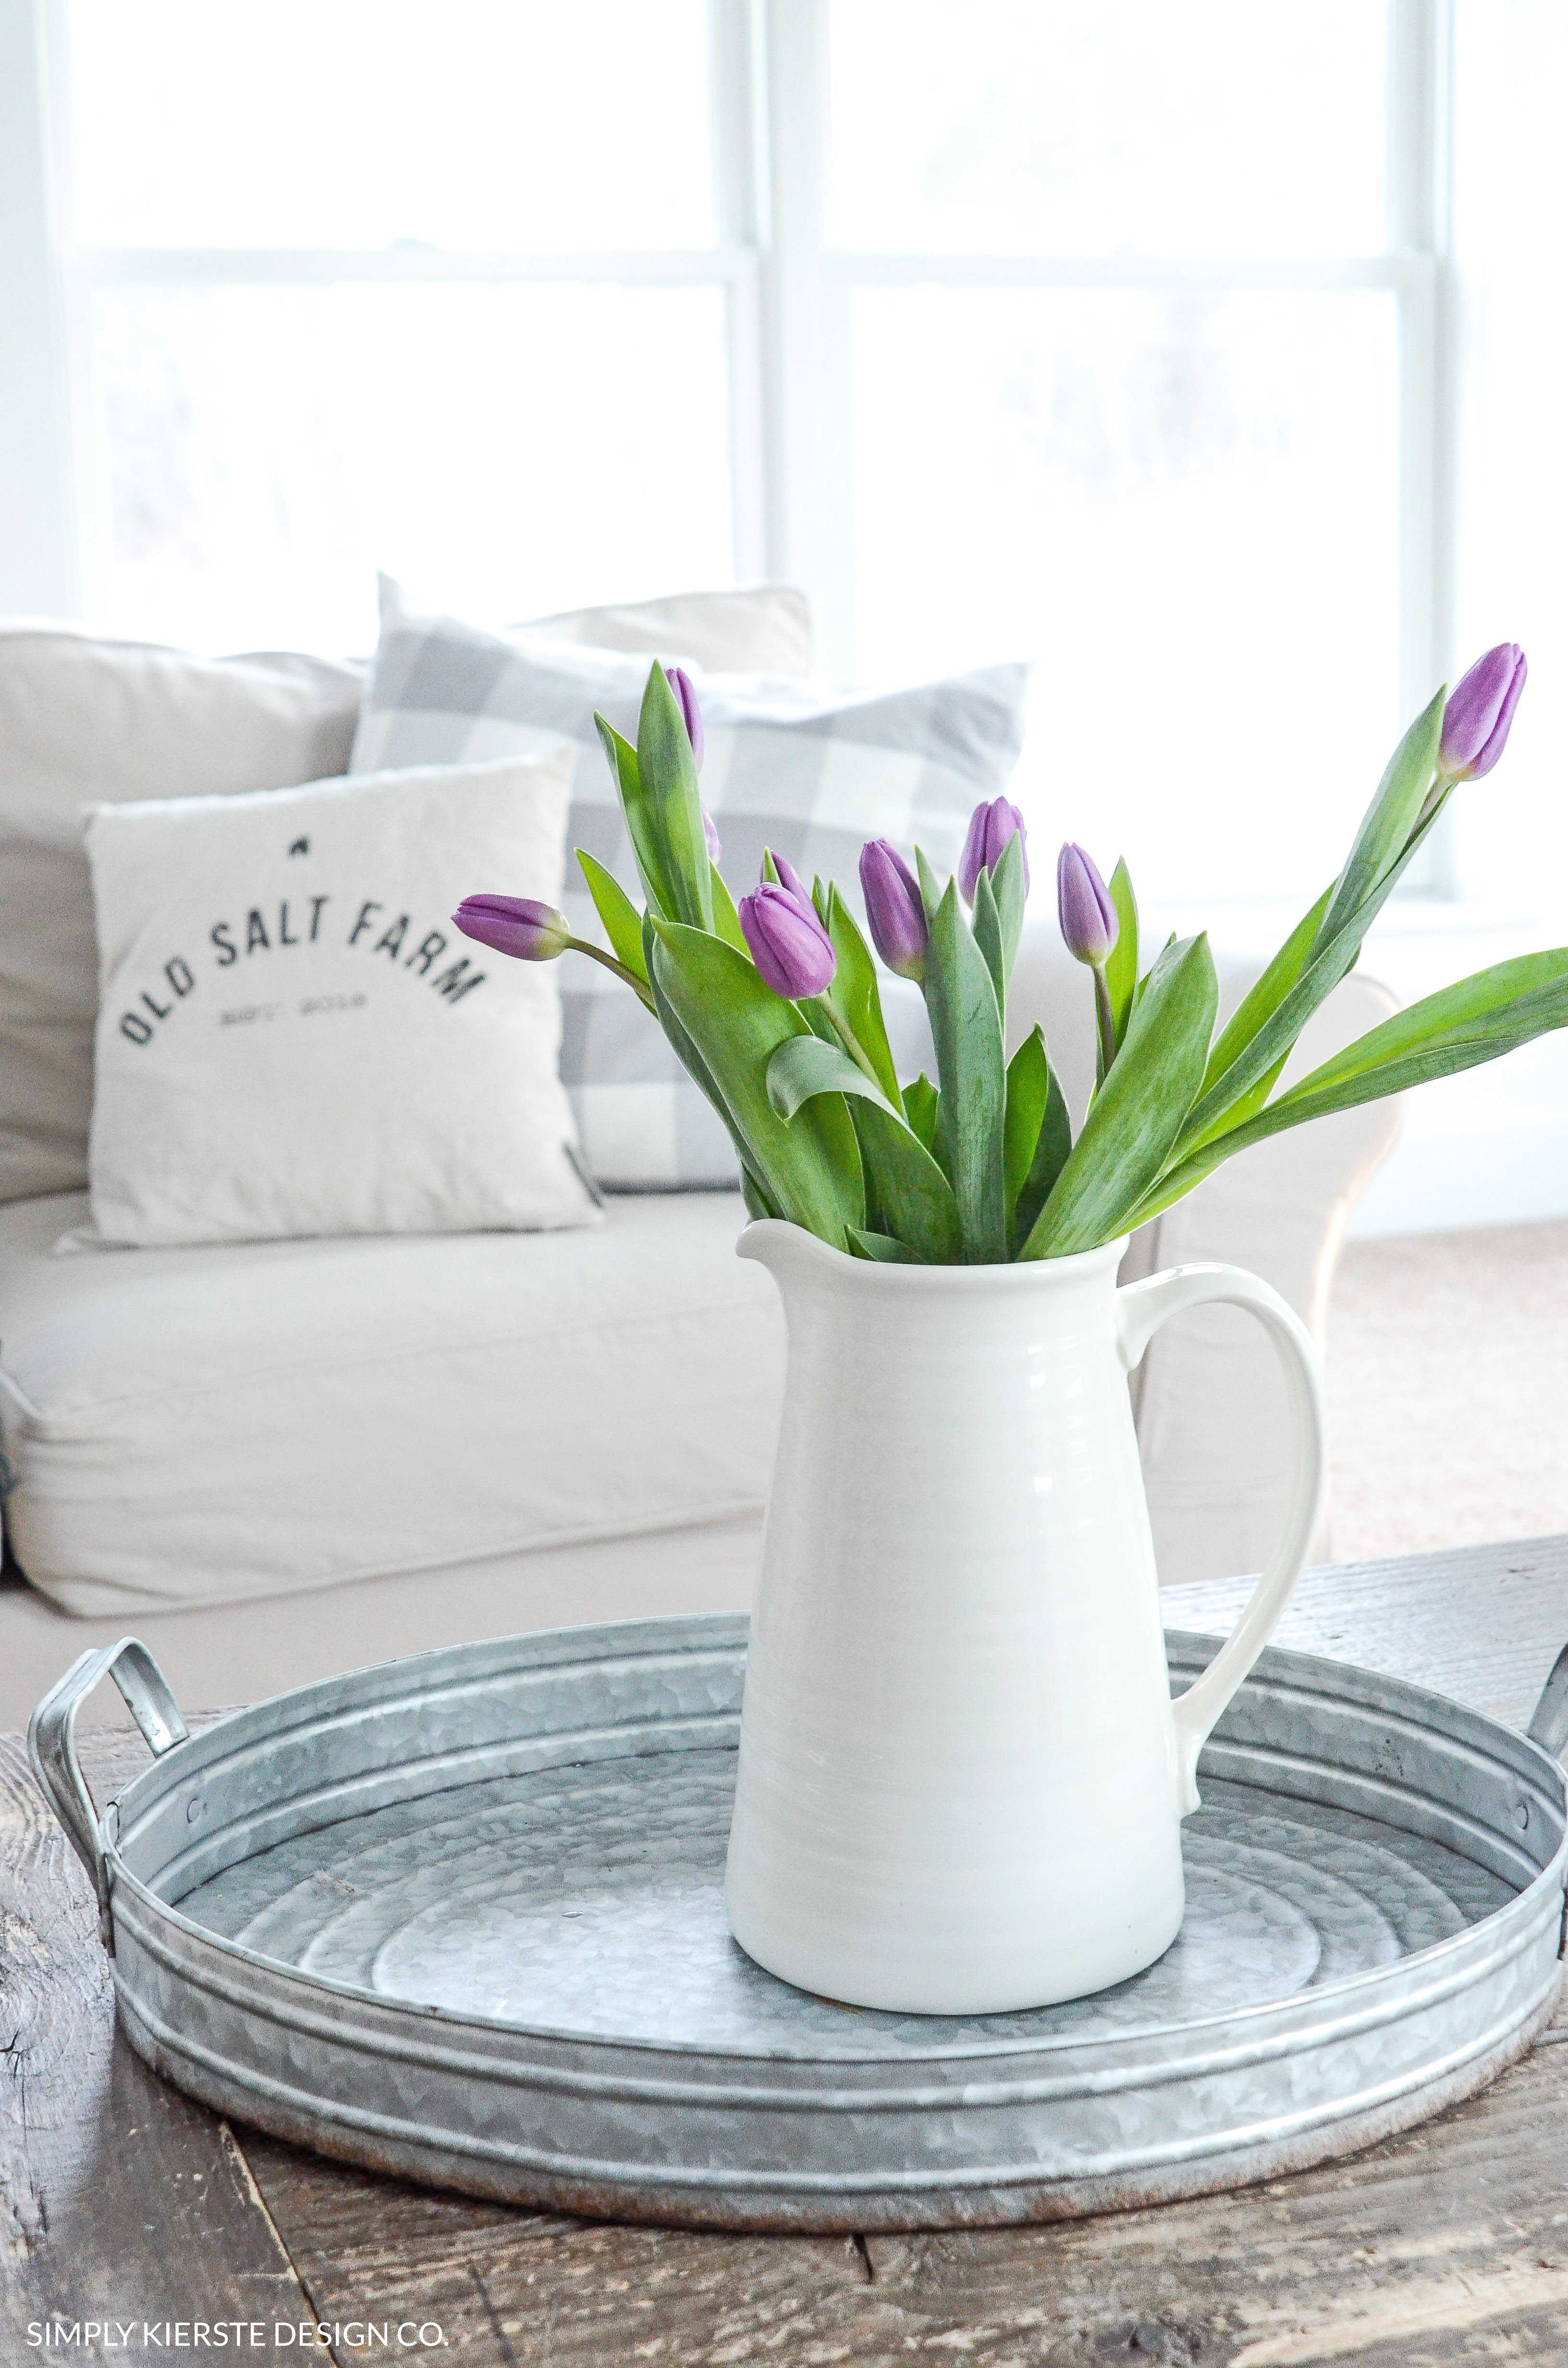 Decorating with Flowers for Spring | simplykierste.com